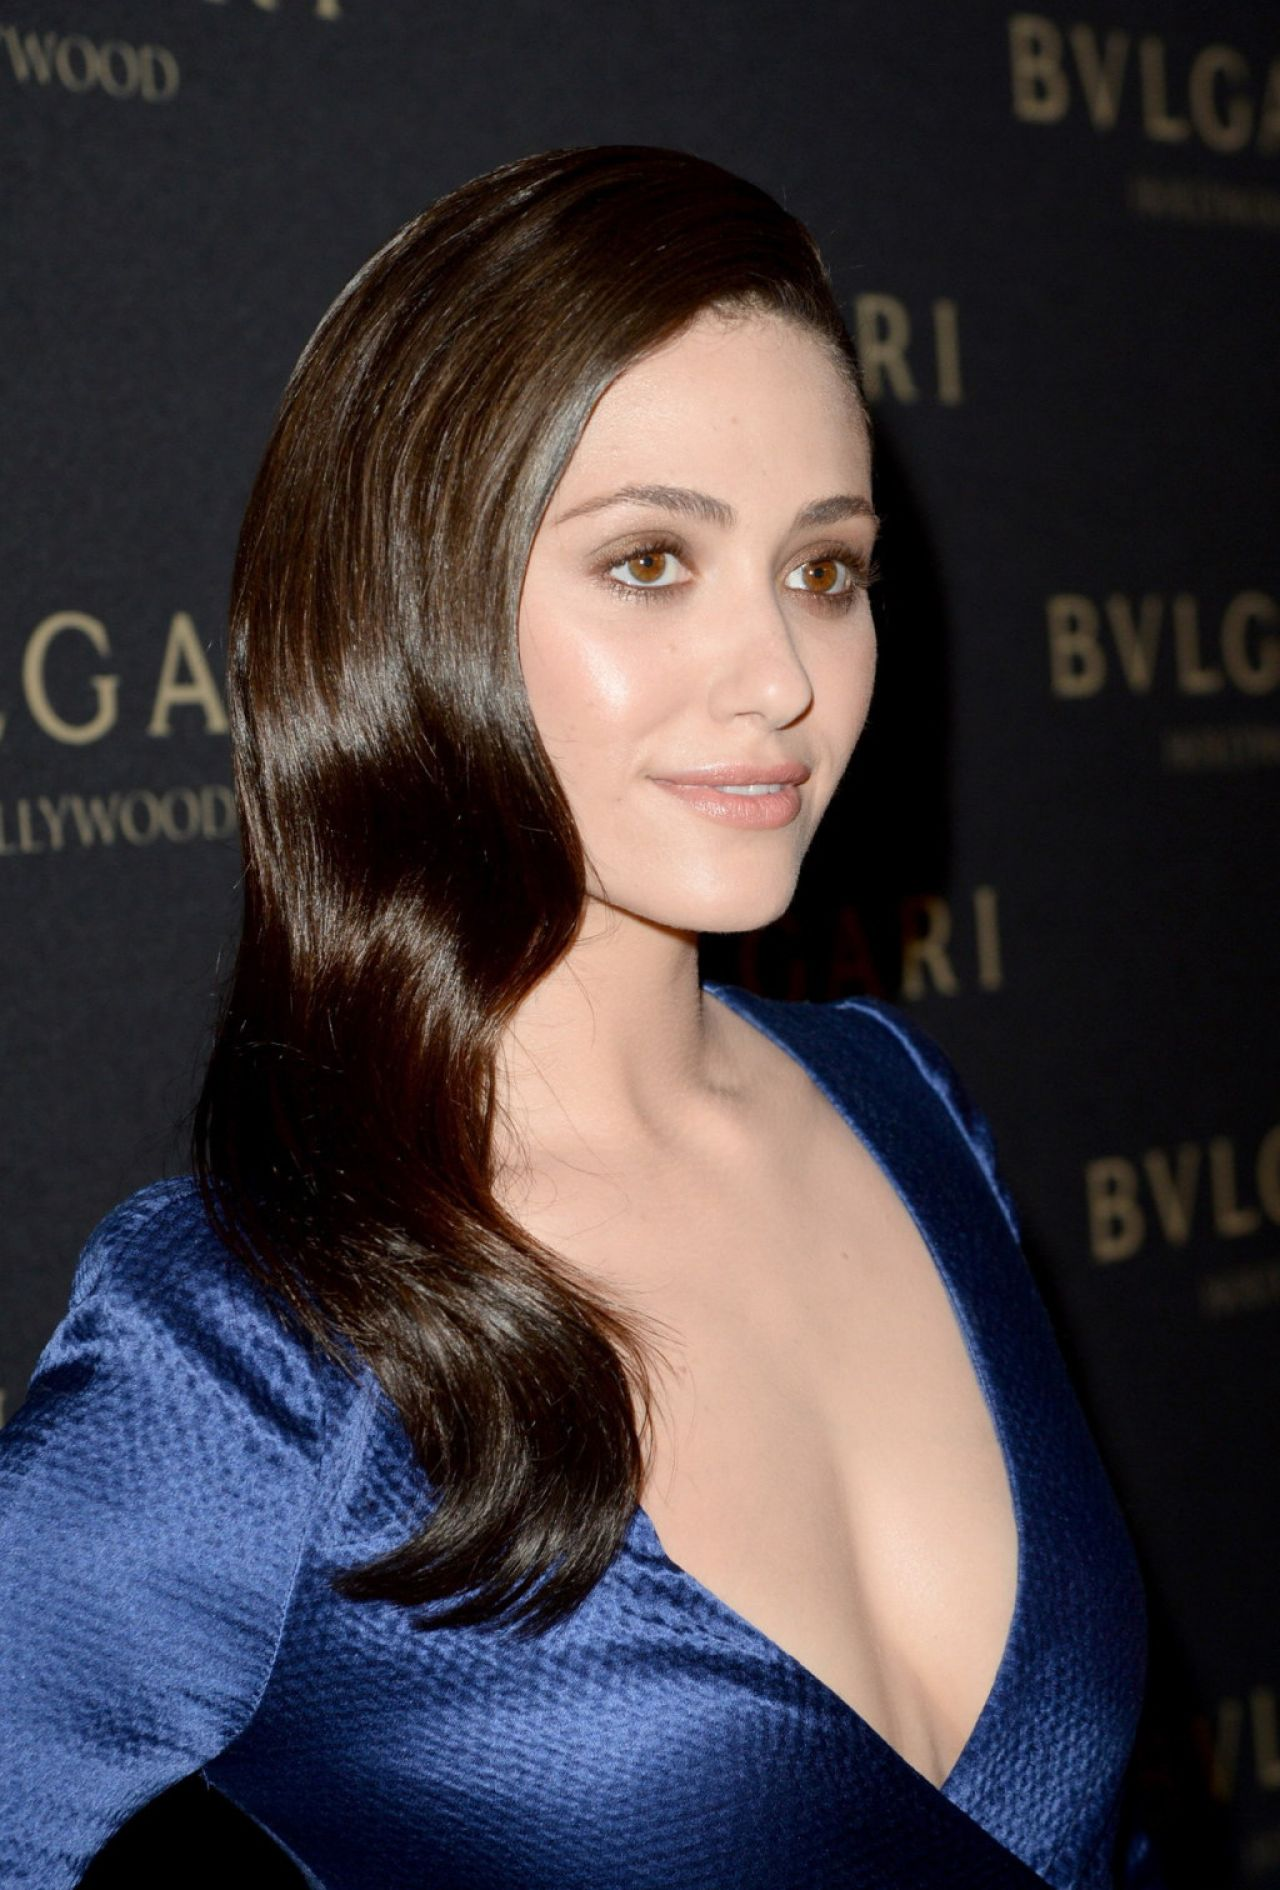 Emmy Rossum Wearing J.Mendel Dress – BVLGARI Presents 'Decades Of Glamour', February 2014